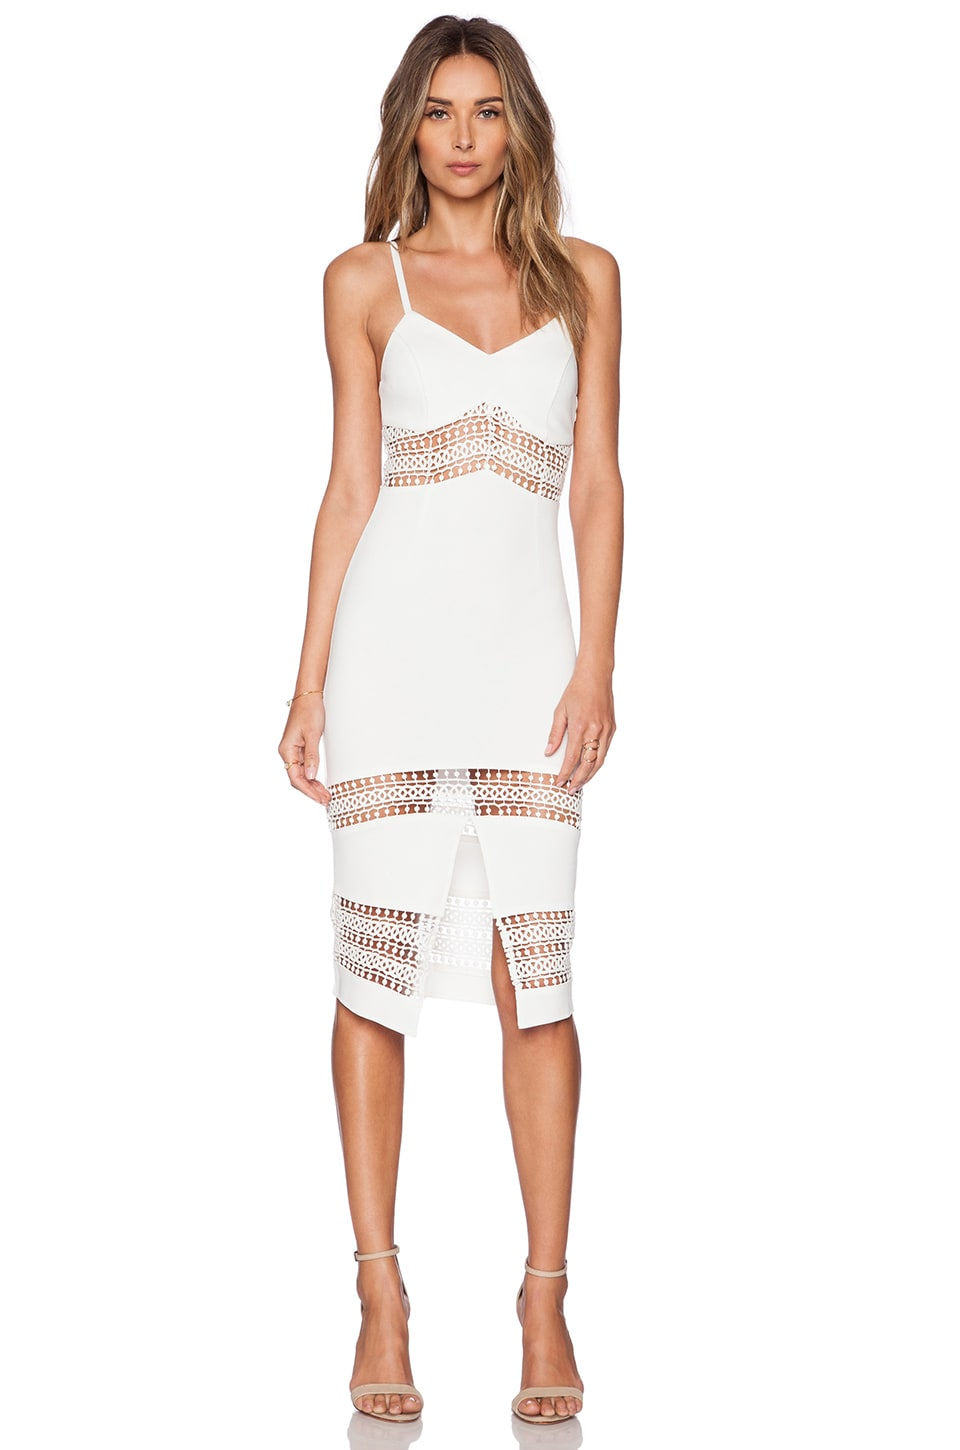 Rise Of Dawn Martini Midi Dress In White Revolve 1,339,969 likes · 6,857 talking about this. rise of dawn